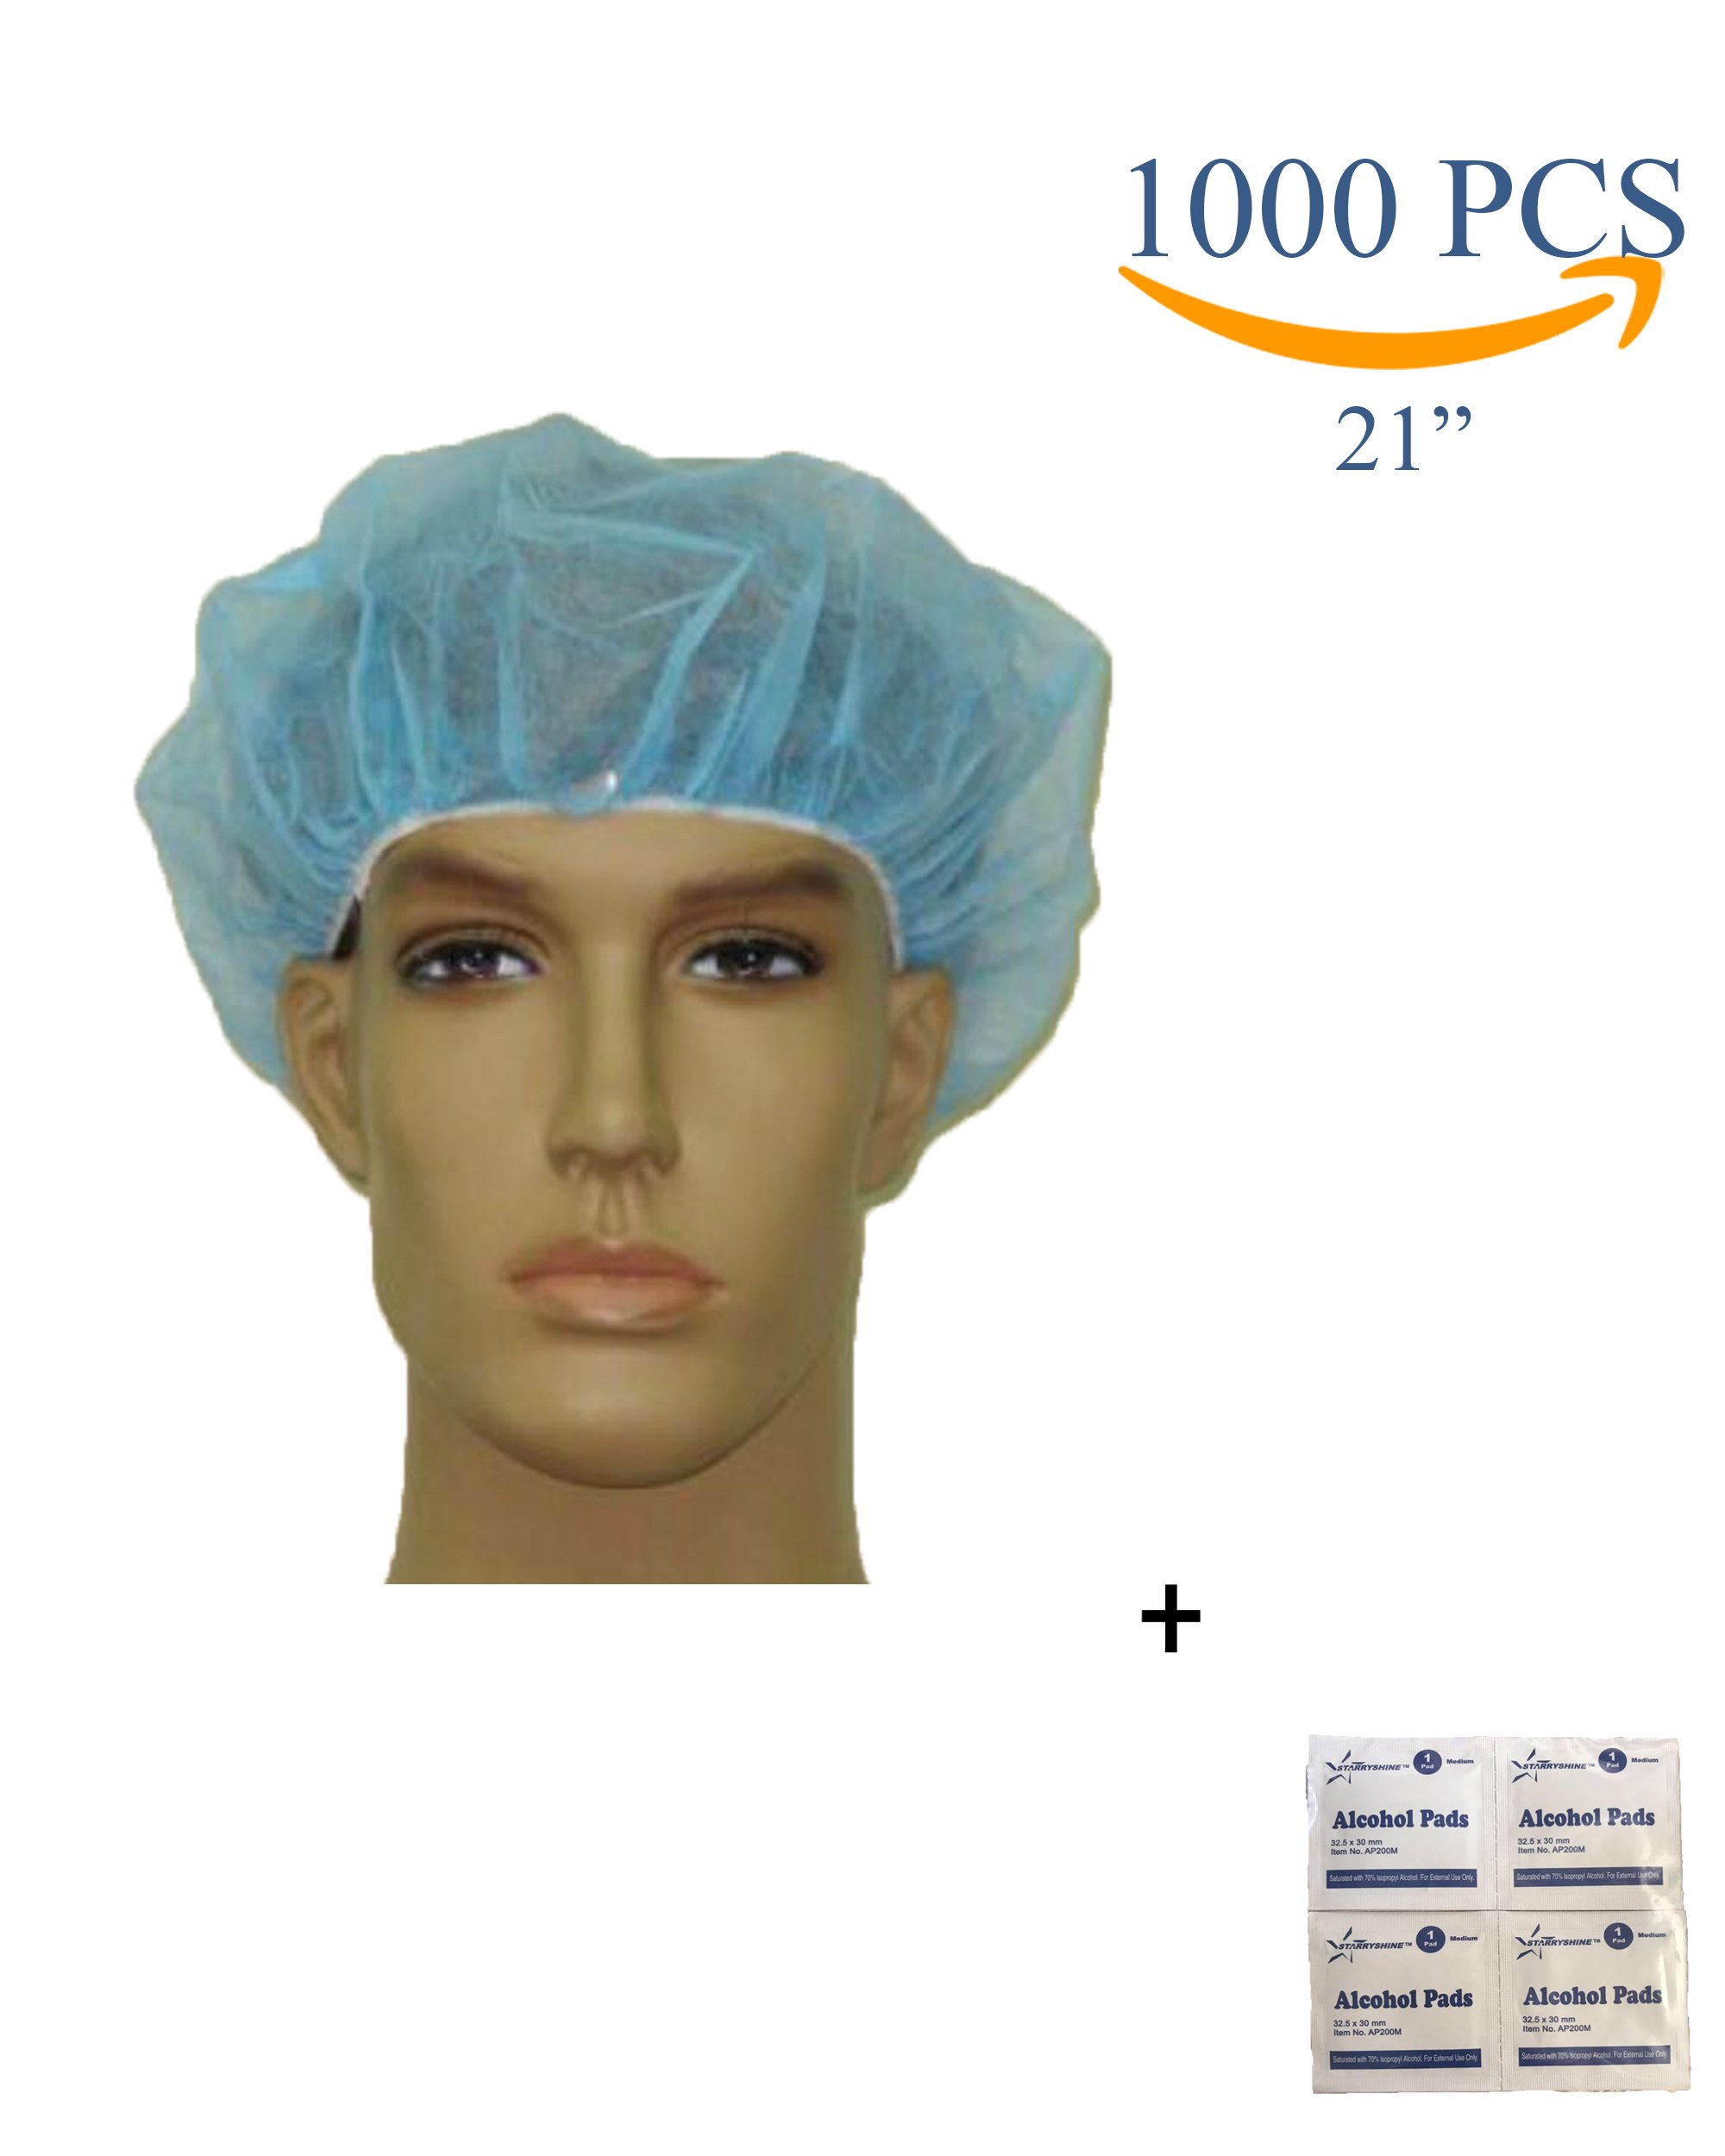 Disposable Bouffant (Hair Net) Caps, Spun-Bounded Poly, Hair Head Cover Net, Non-Woven, Medical, Labs, Nurse, Tattoo, Food Service, Health, Hospital -Bonus Starryshine A/P (21'', BLUE (1000 PCS))